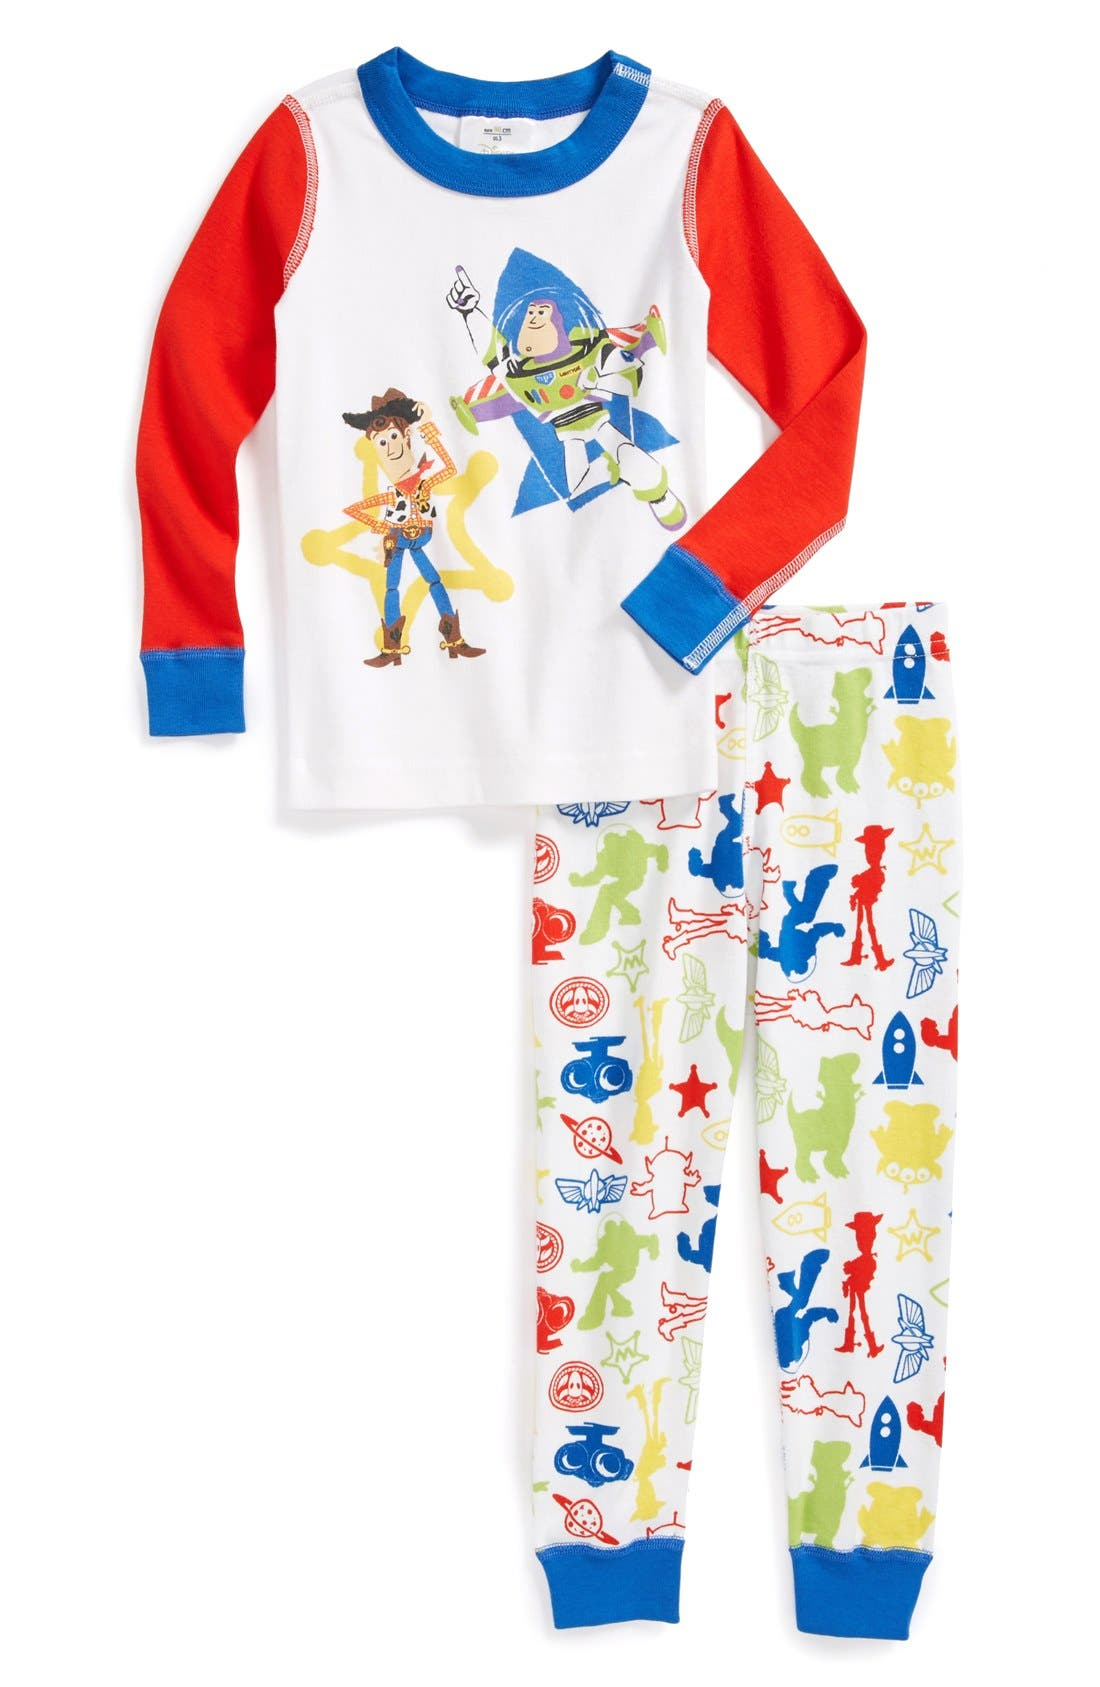 Main Image - Hanna Andersson 'Toy Story®' Two-Piece Organic Cotton Fitted Pajamas (Toddler Boys)